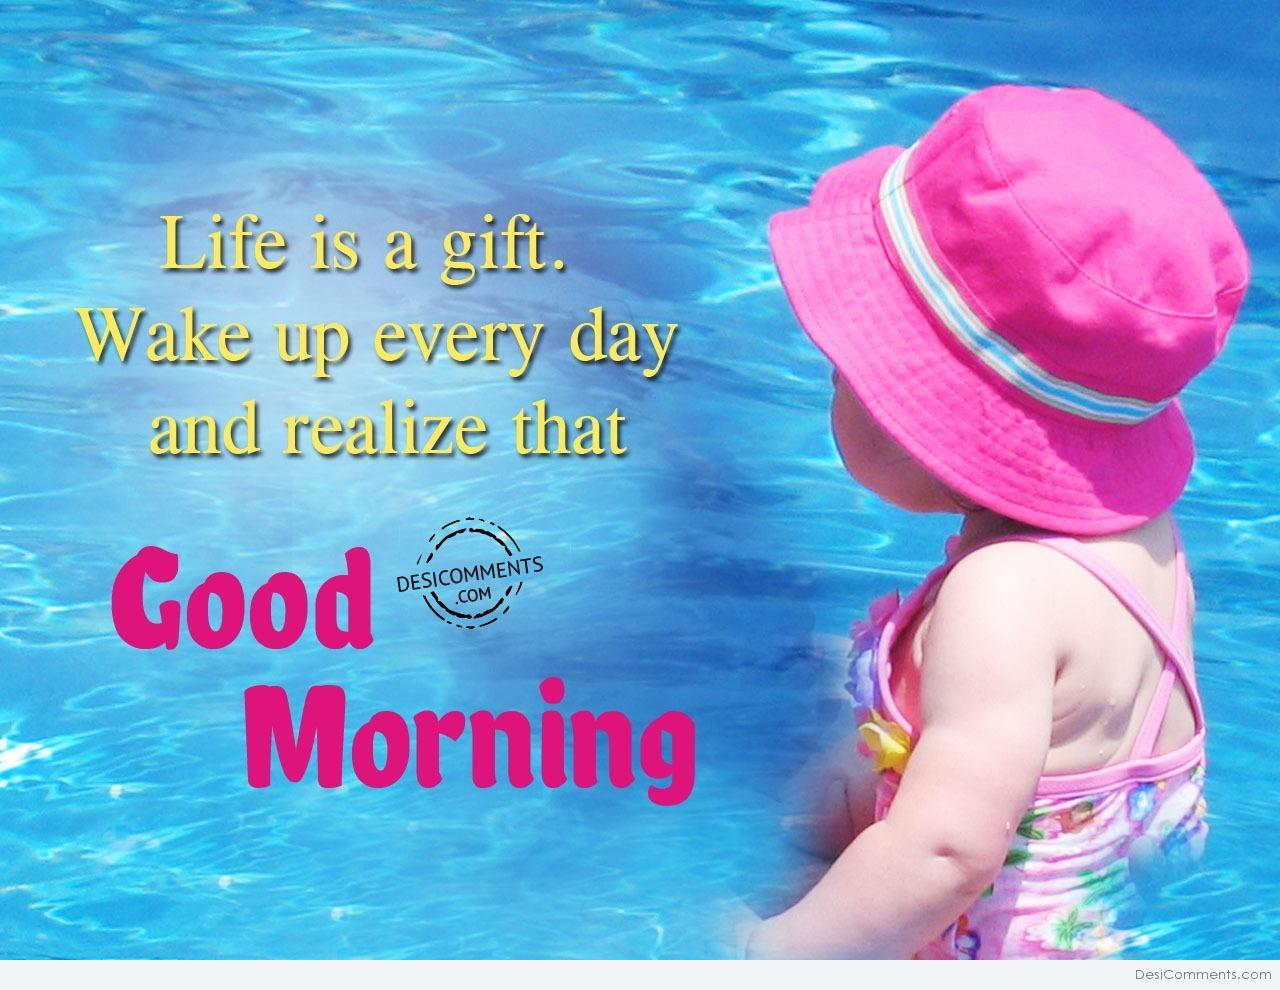 Life is a gift good morning desicomments life is a gift good morning negle Images